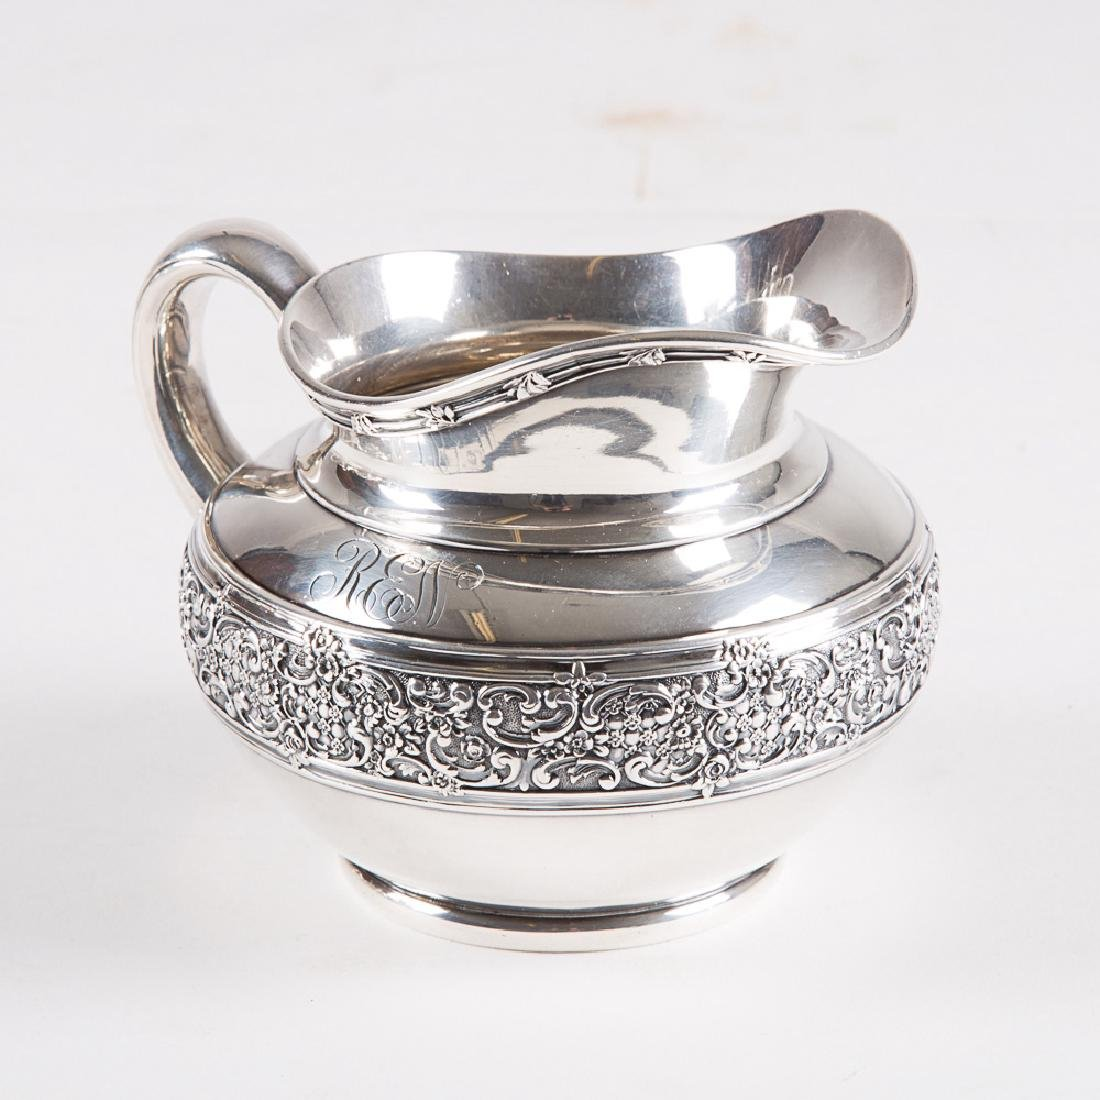 A Tiffany & Company Sterling Silver Seven Piece Coffee - 5